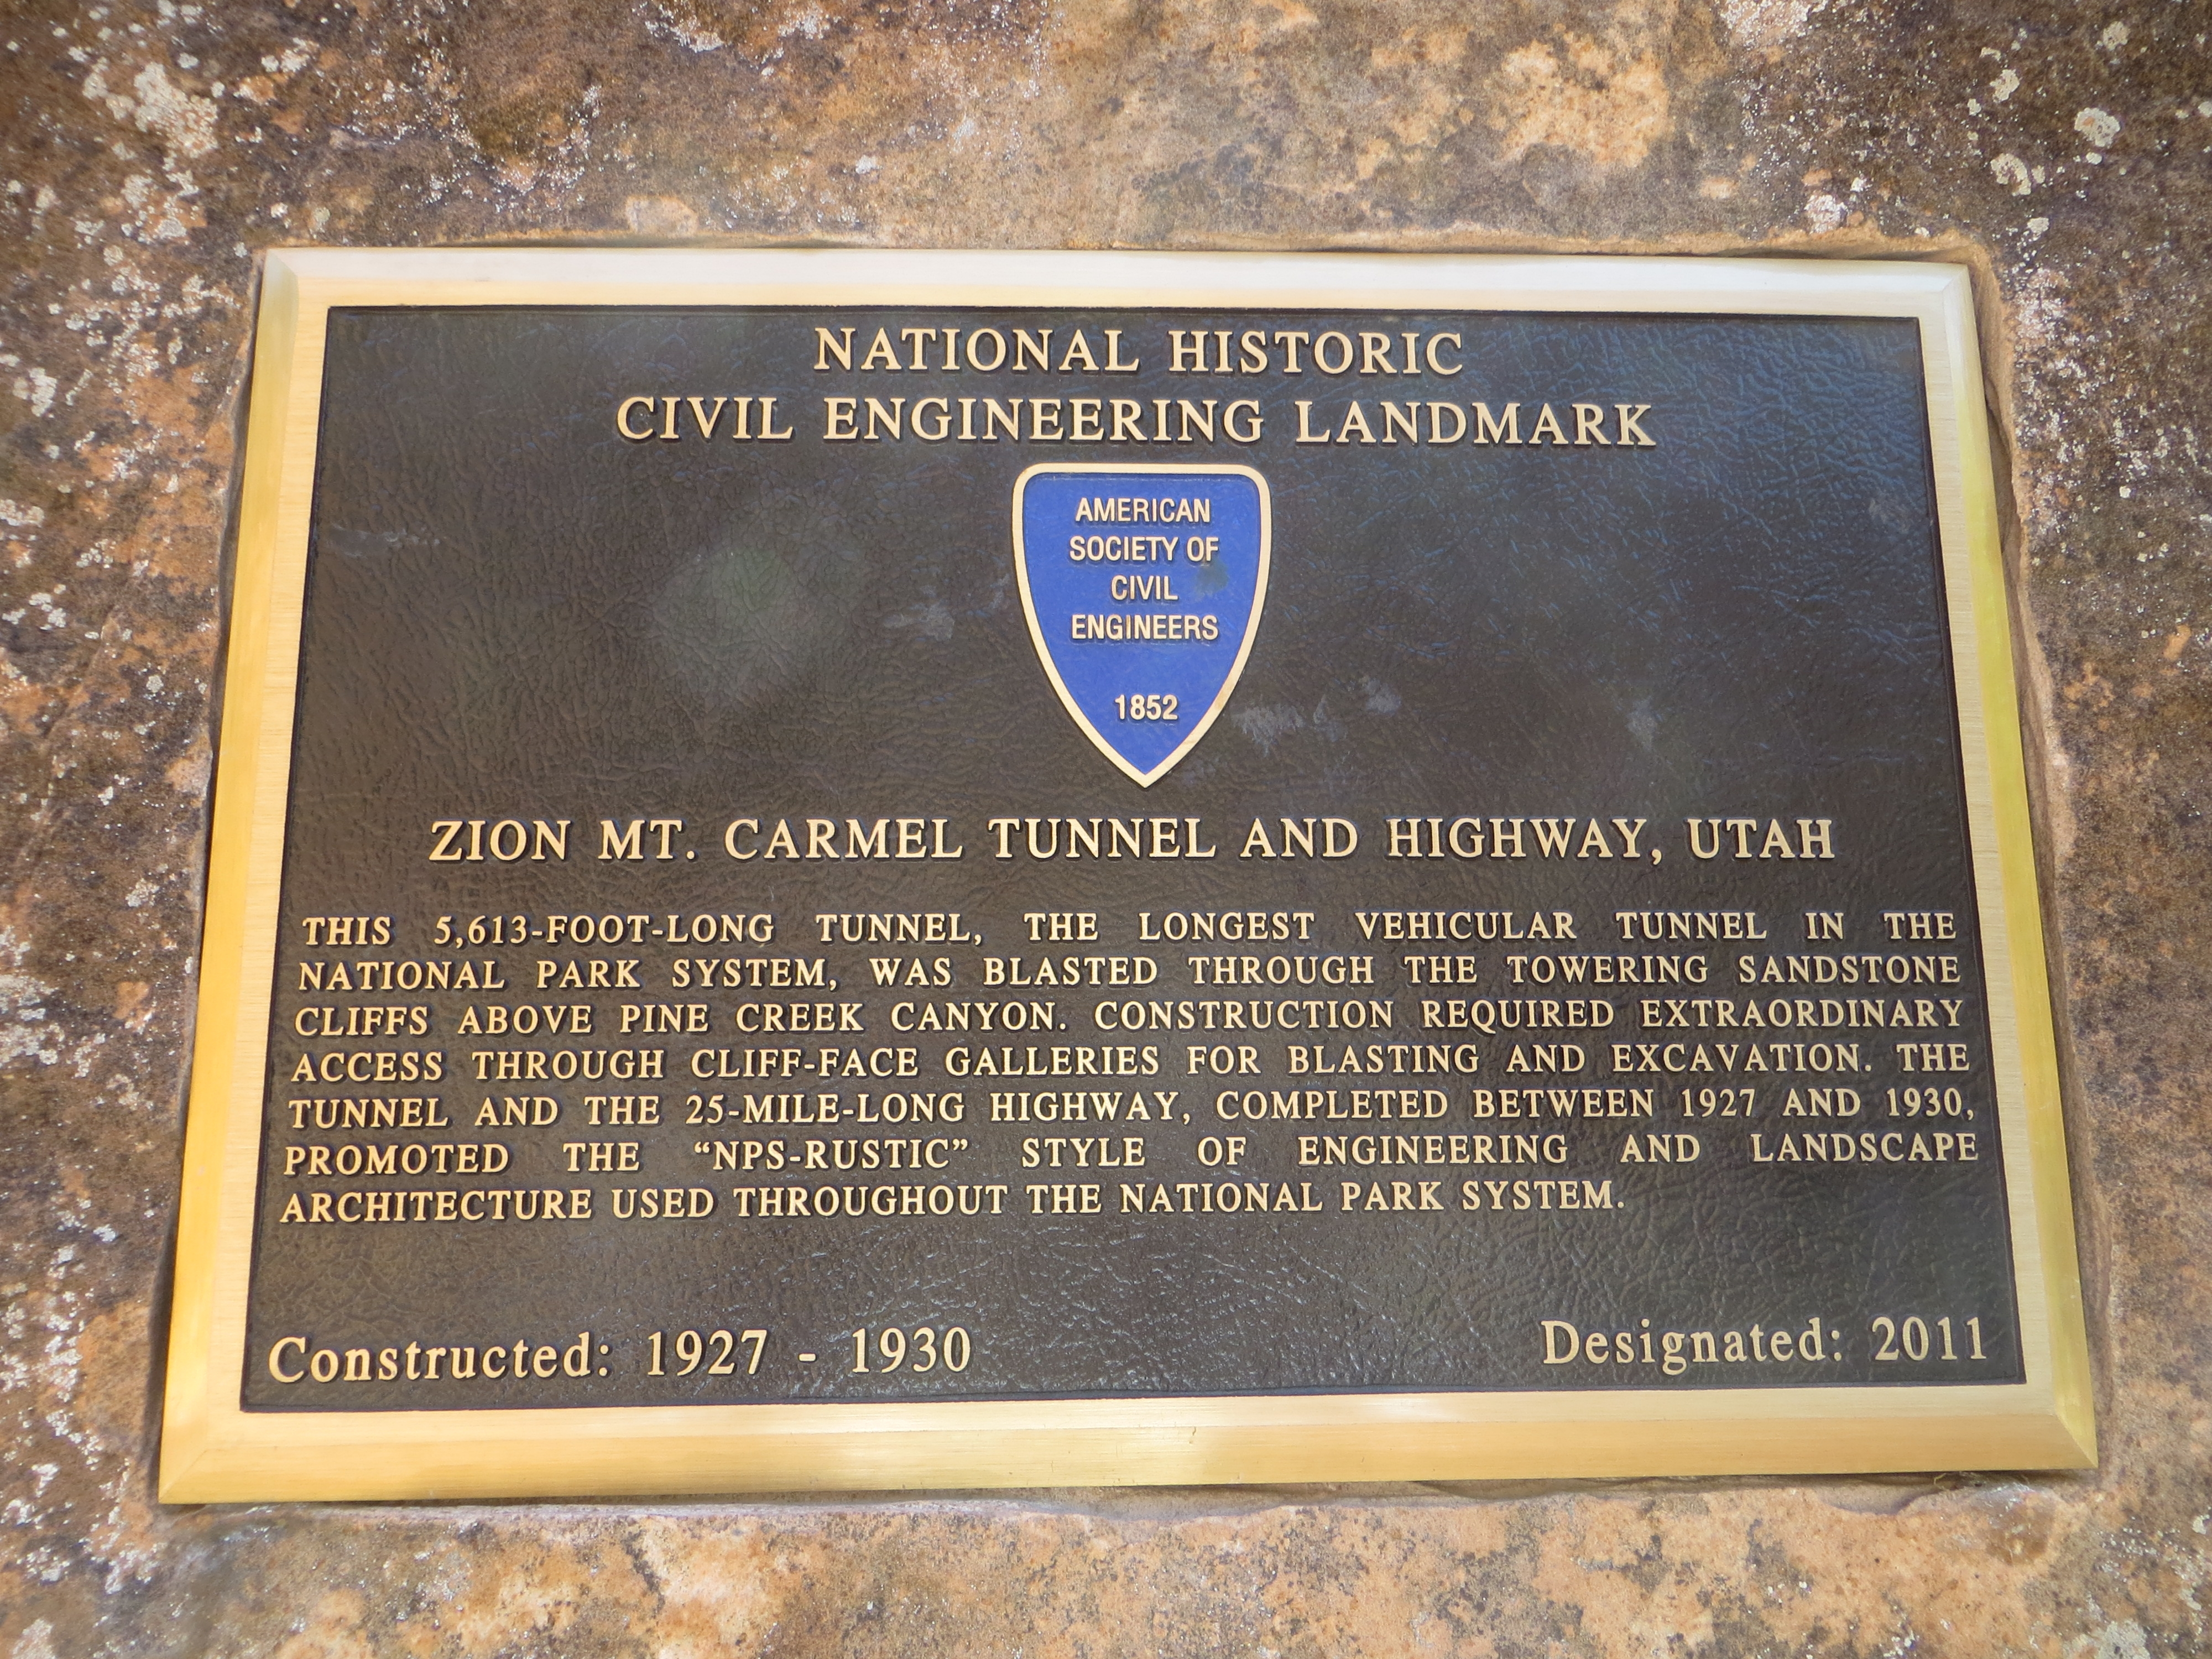 Zion Mt. Carmel Tunnel and Highway, Utah Marker